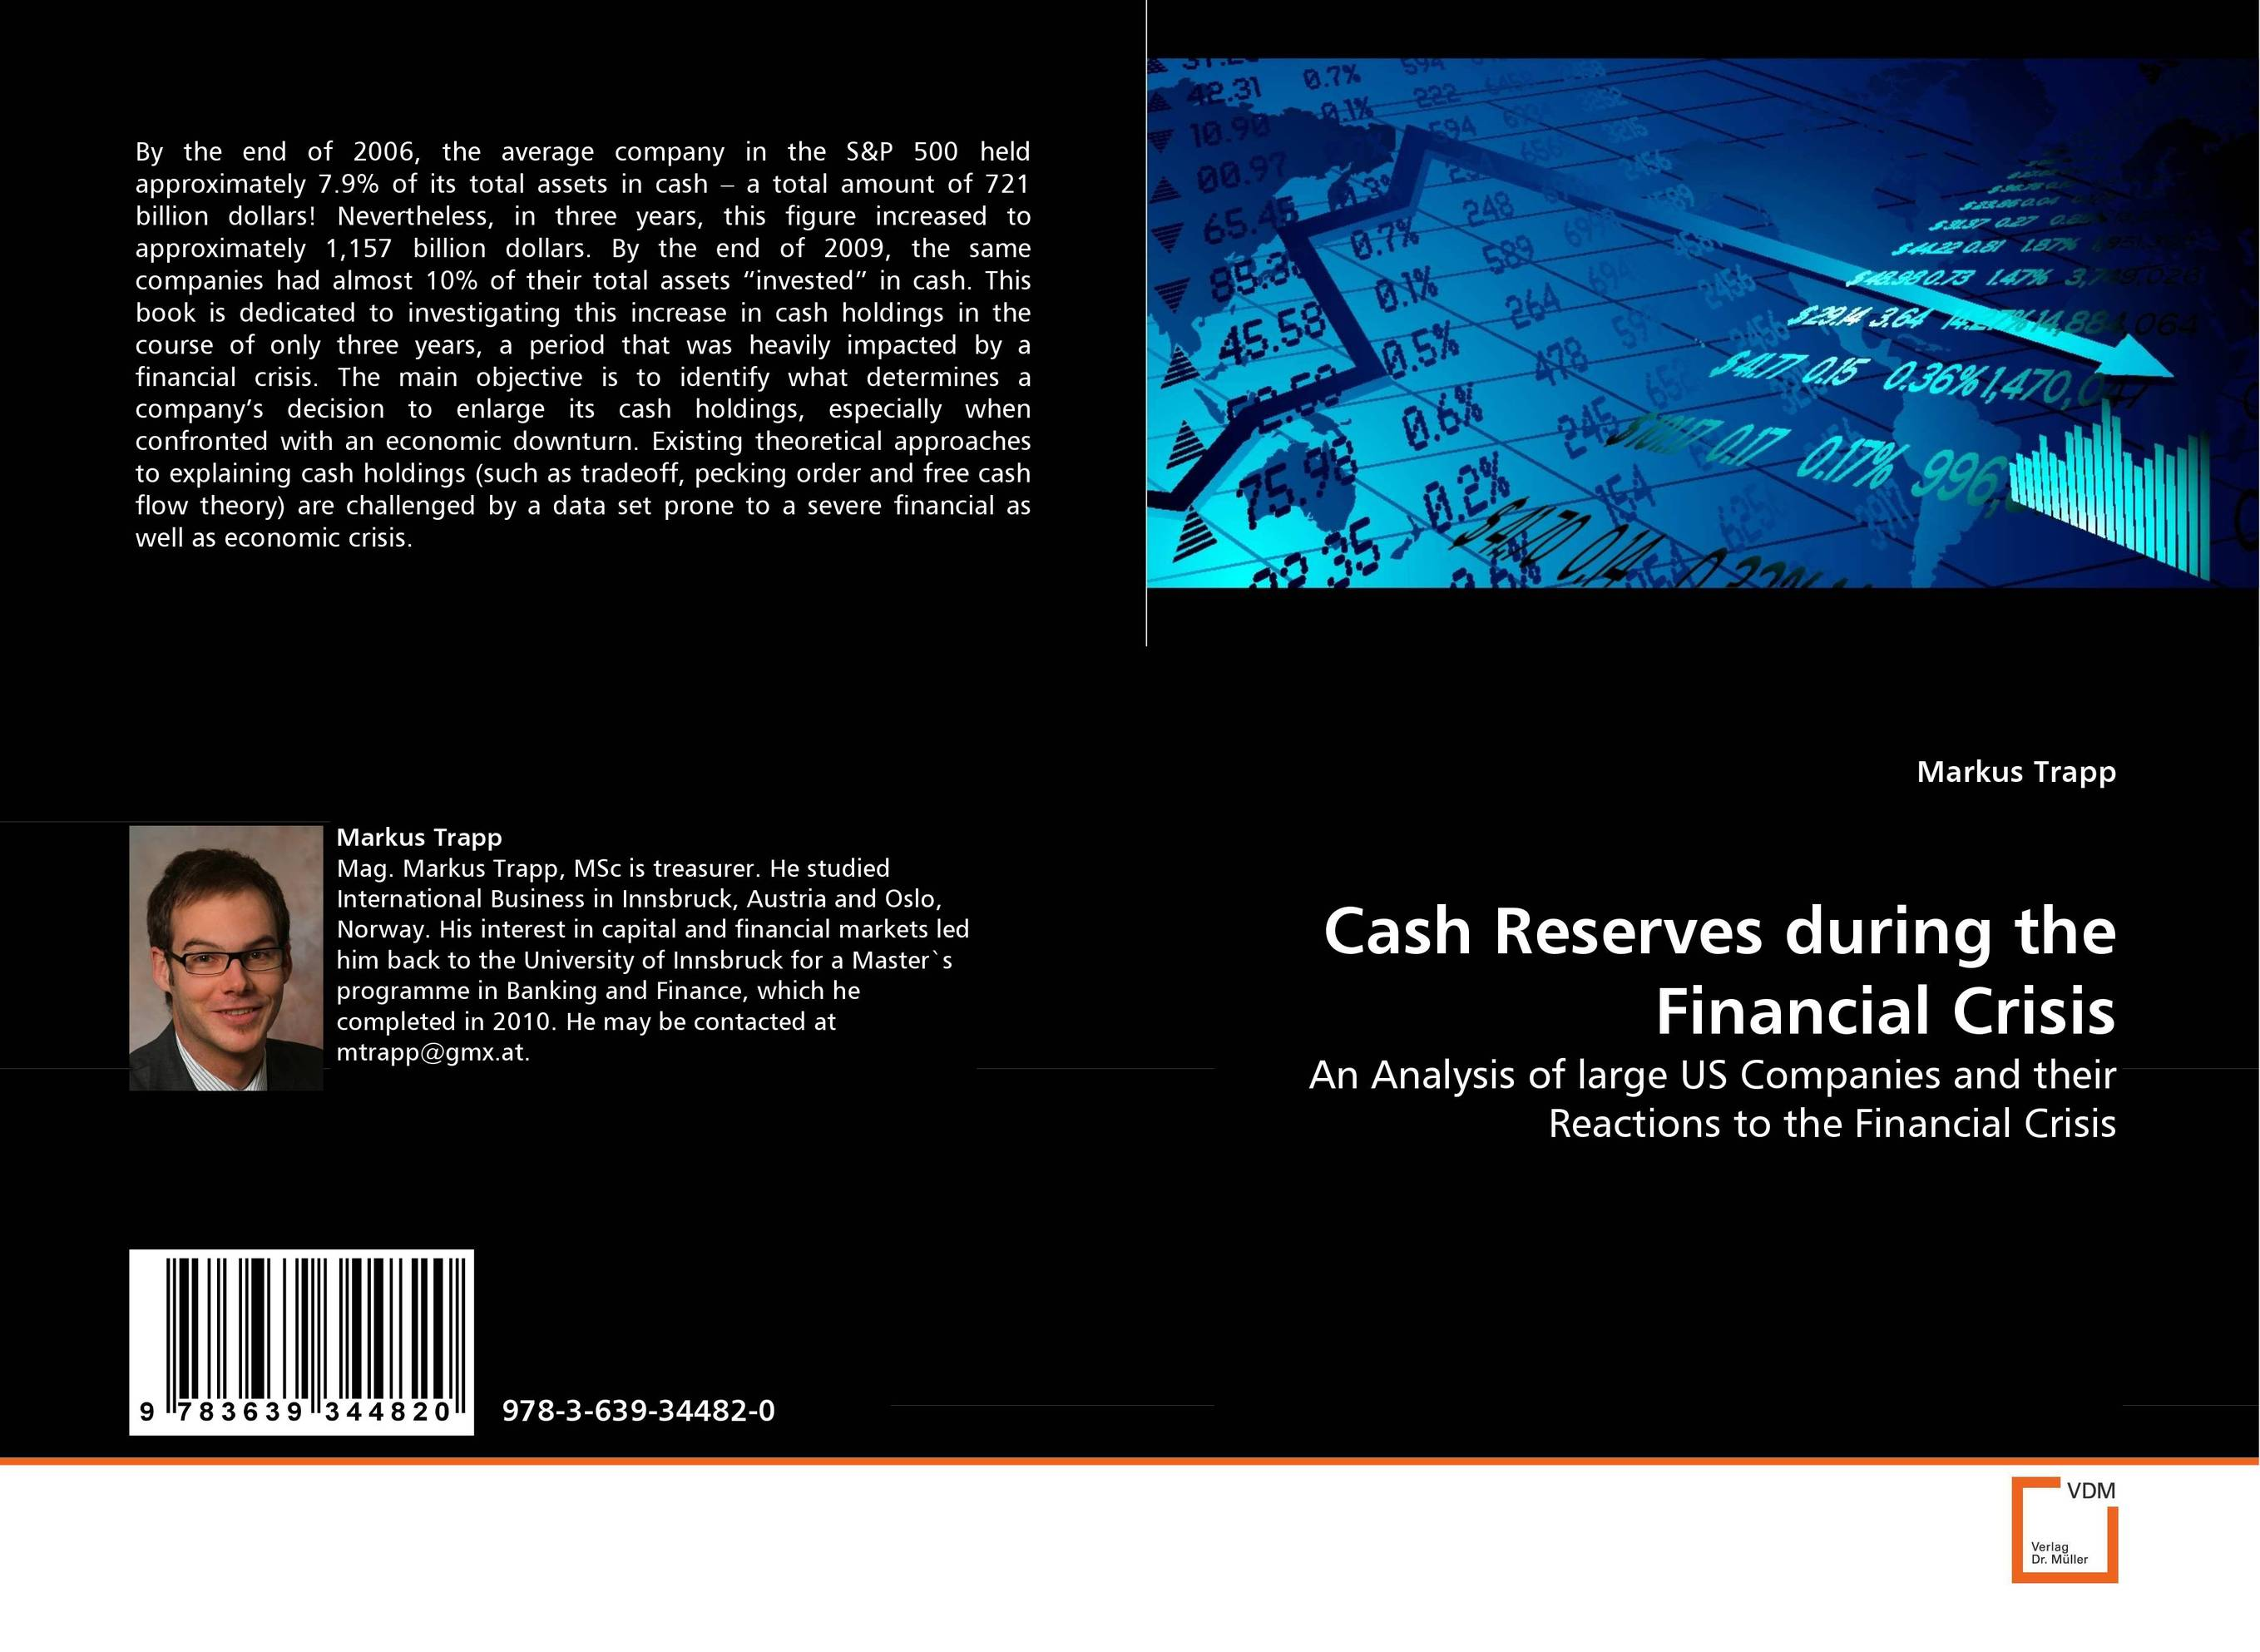 Cash Reserves during the Financial Crisis